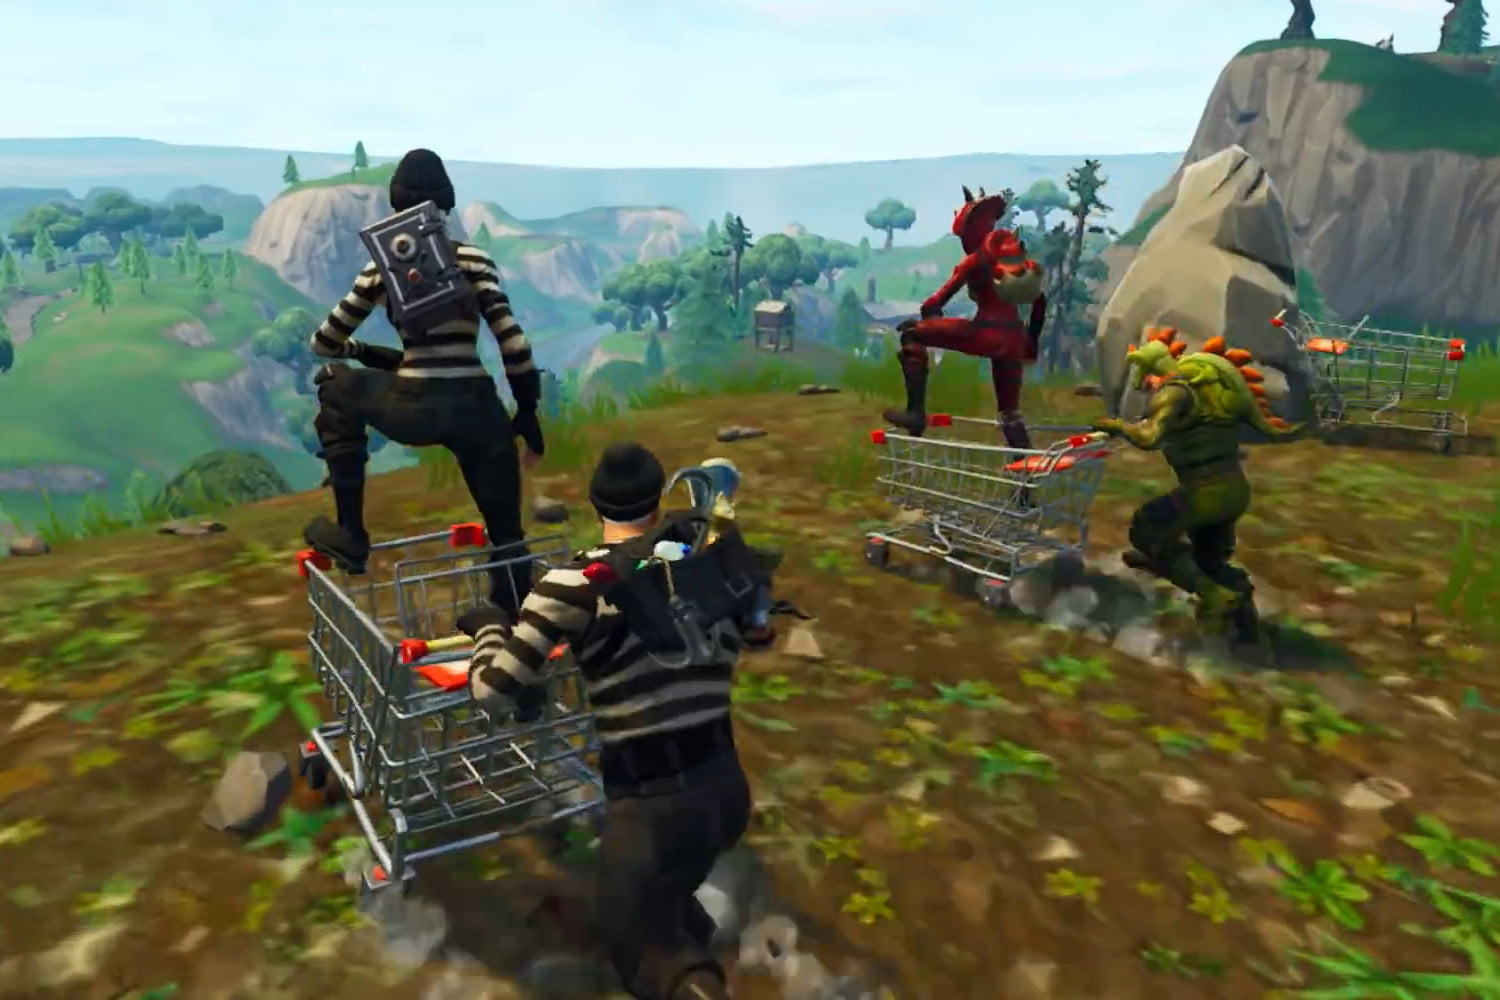 Rare Physical Copies Of The Original Fortnite Are Selling